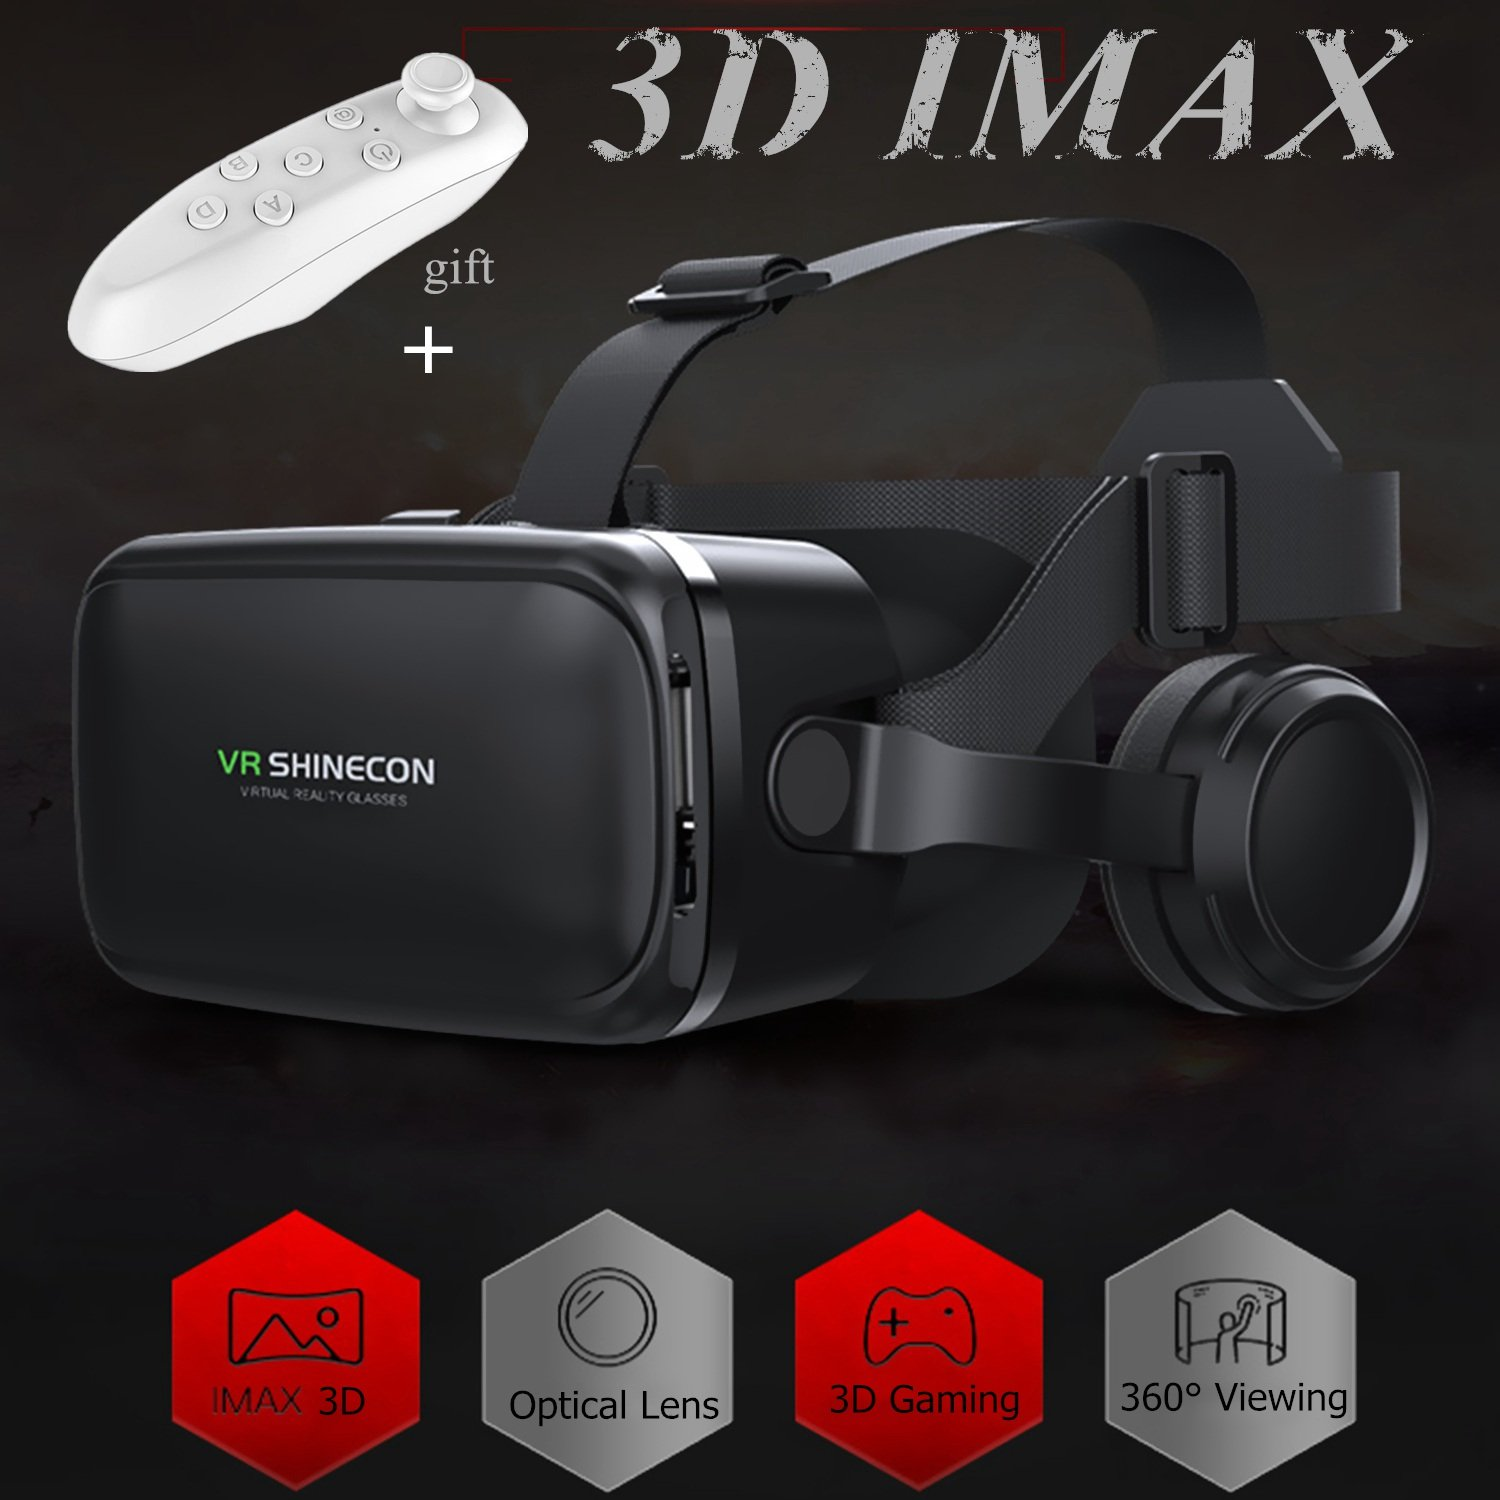 VR Headset/Glasses with Remote Controller & Headphones[Built-in], TSANGLIGHT Virtual Reality Headset 3D IMAX Movie Game Visor for Galaxy S8 S7 iPhone X 8 7 Plus &Other 4.7-6.0'' Android/iOS Smartphone by TSANGLIGHT